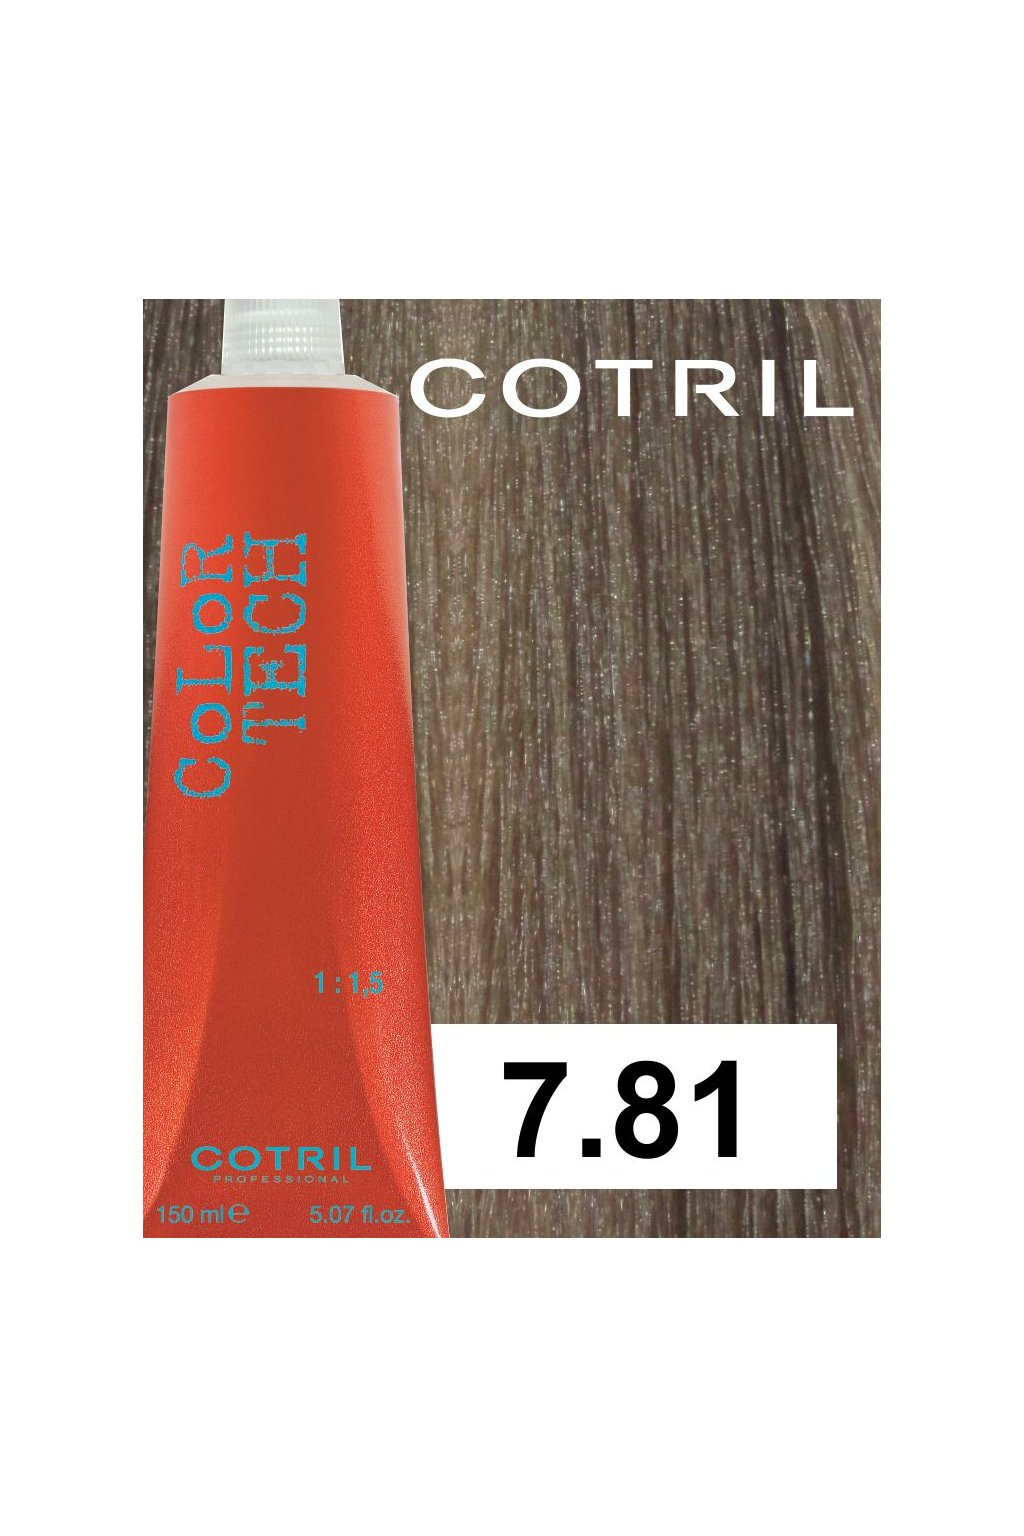 7 81 ct cotril